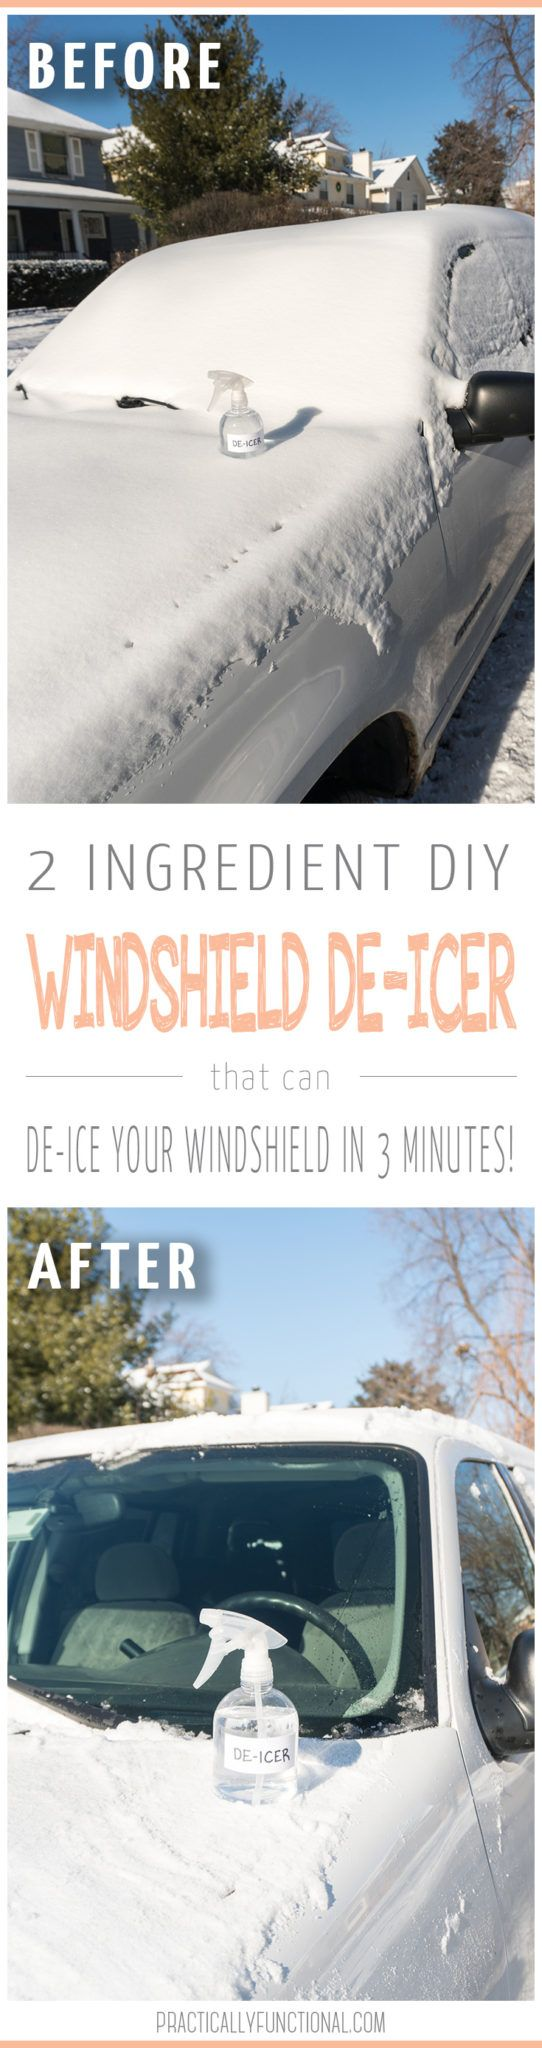 This 2 ingredient homemade windshield de-icer spray will de-ice your window in under 3 minutes, no scraping required! Spray it on, get in the car, and 3 minutes later you're ready to go! #deicer #carcare #CarCareTips